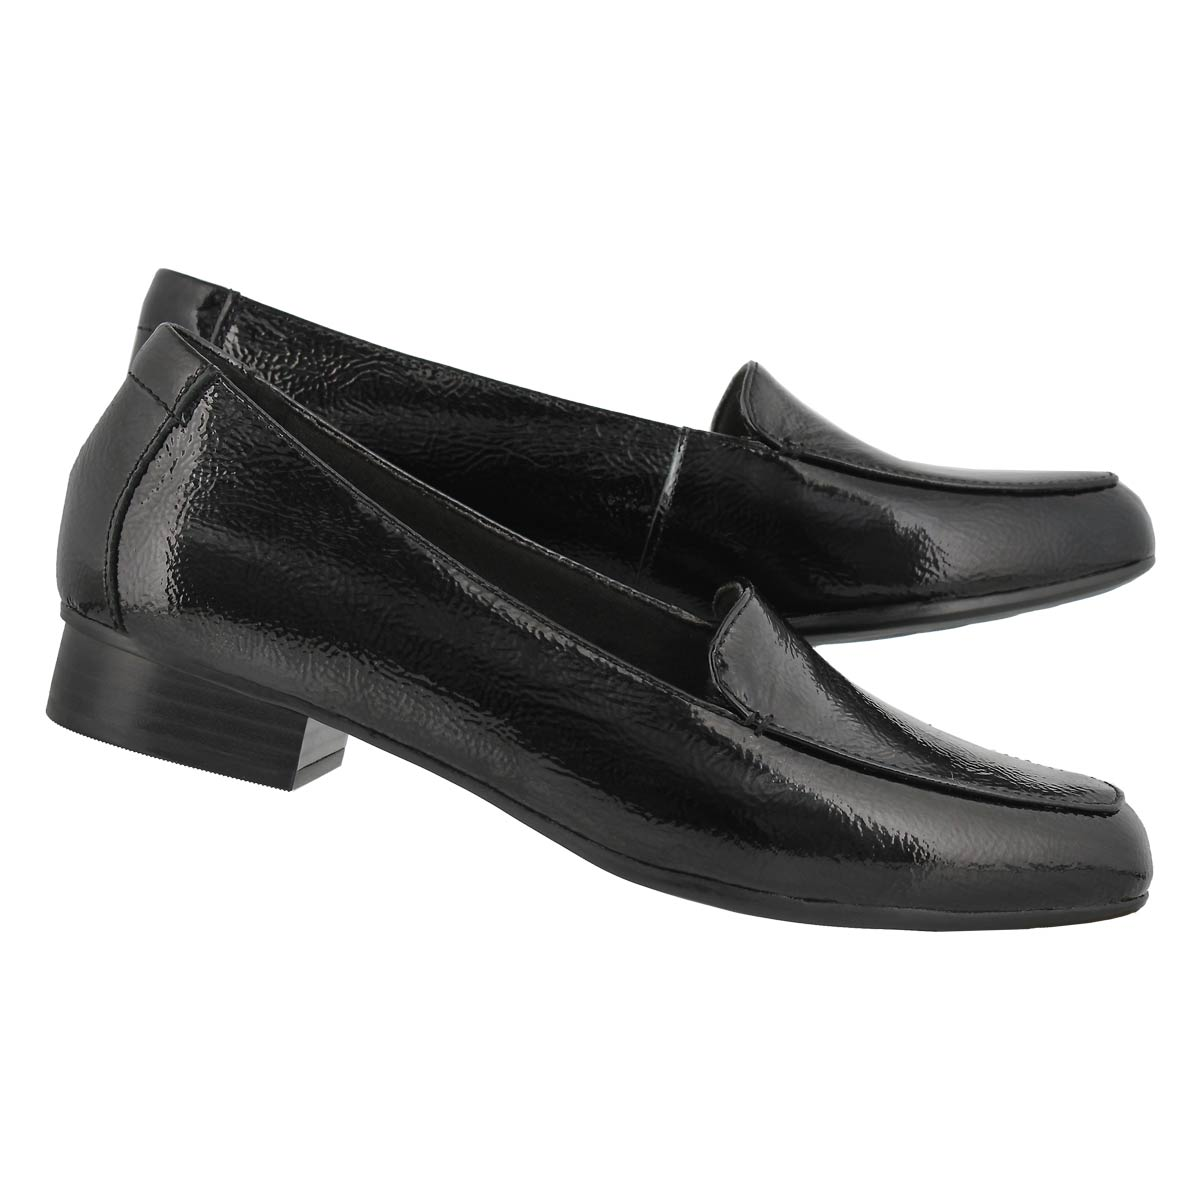 Lds Juliet Lora blkpat dress loafer-wide